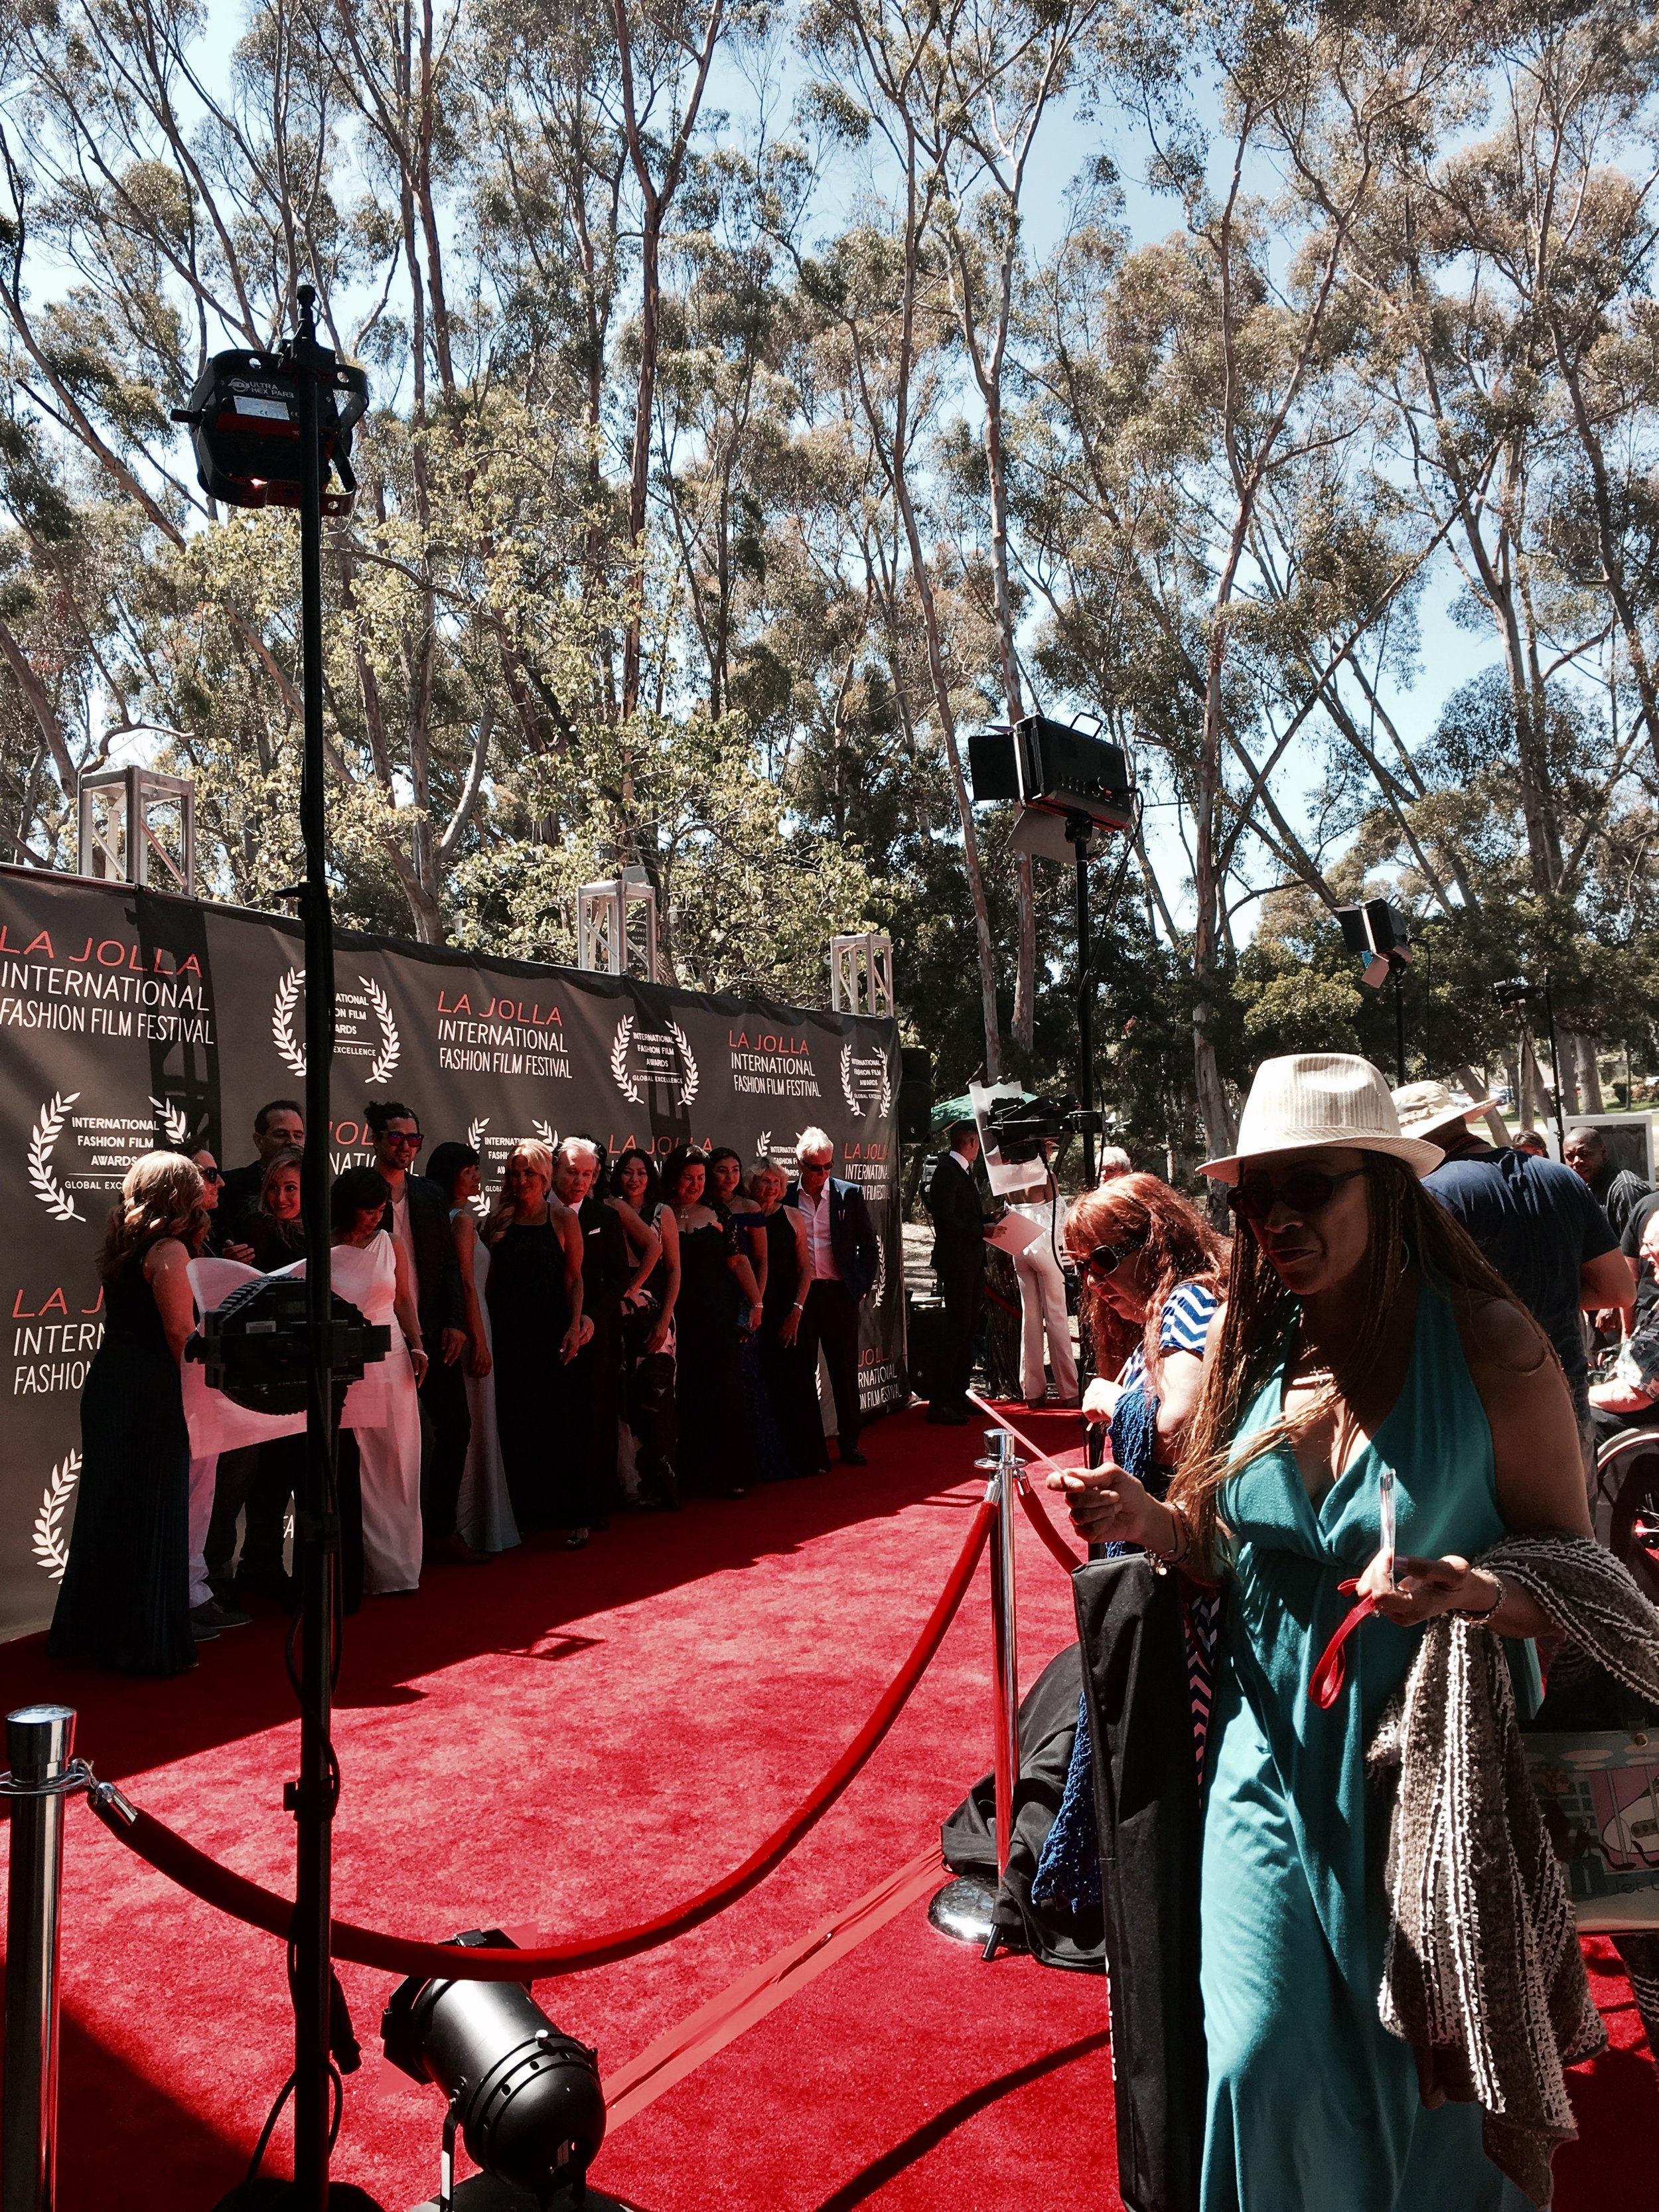 Traffic on the Red Carpet